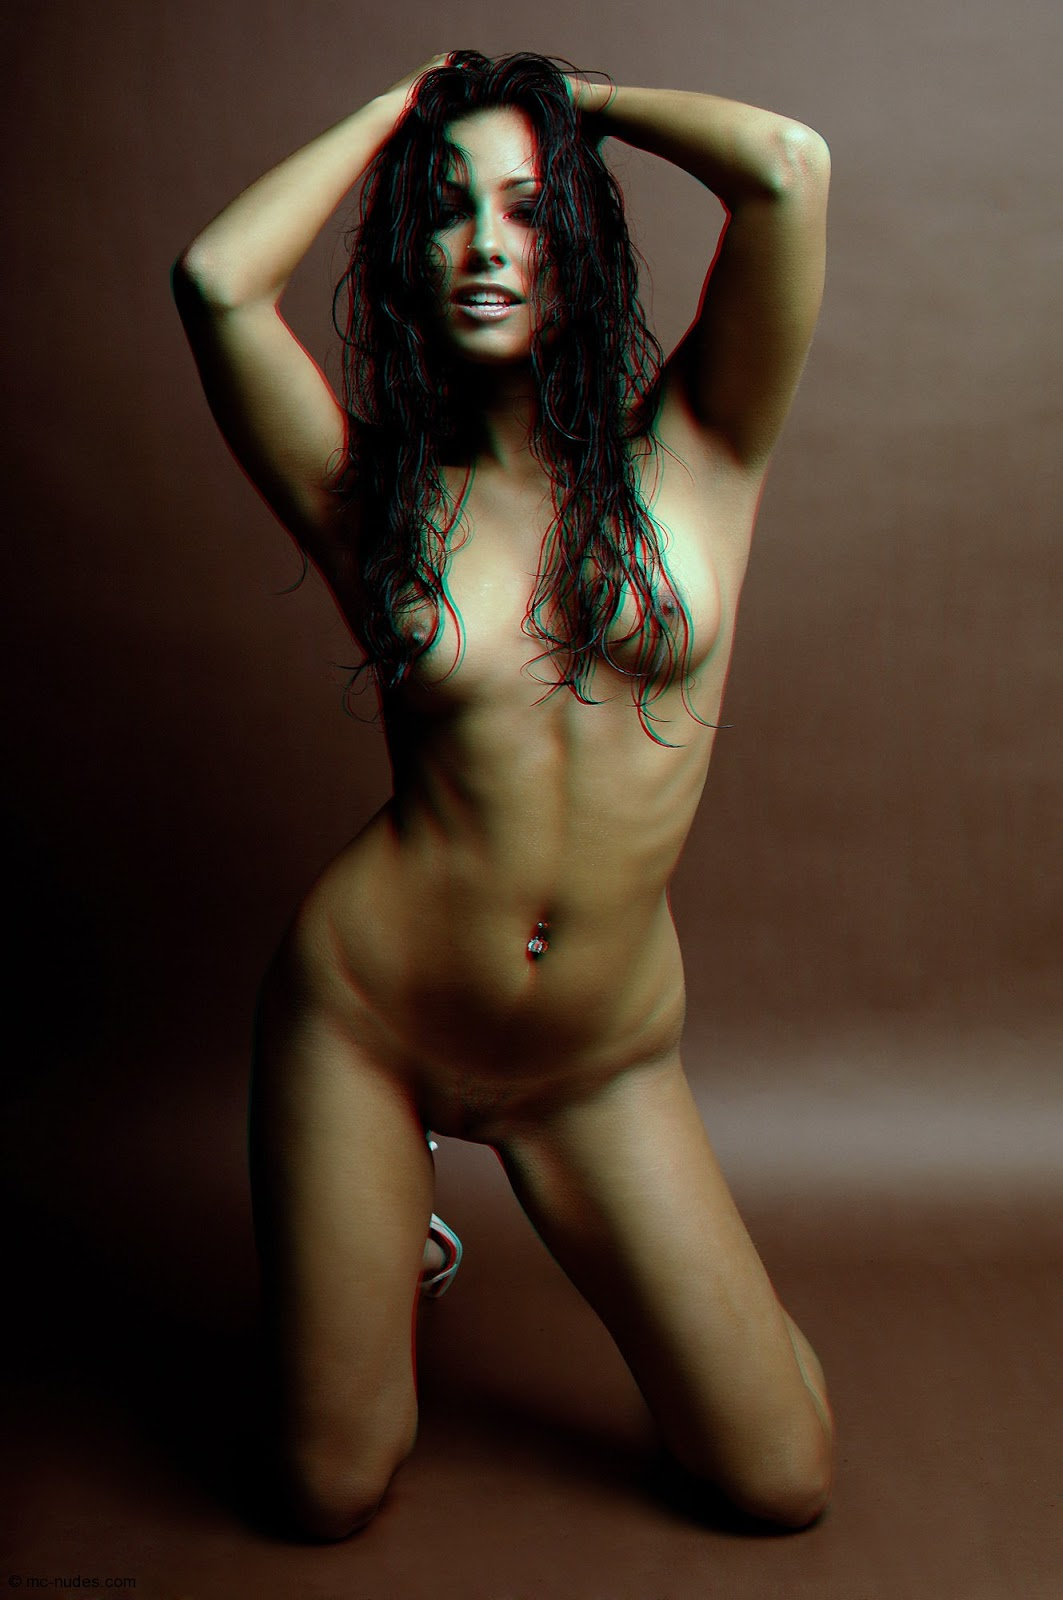 And have julia ling naked